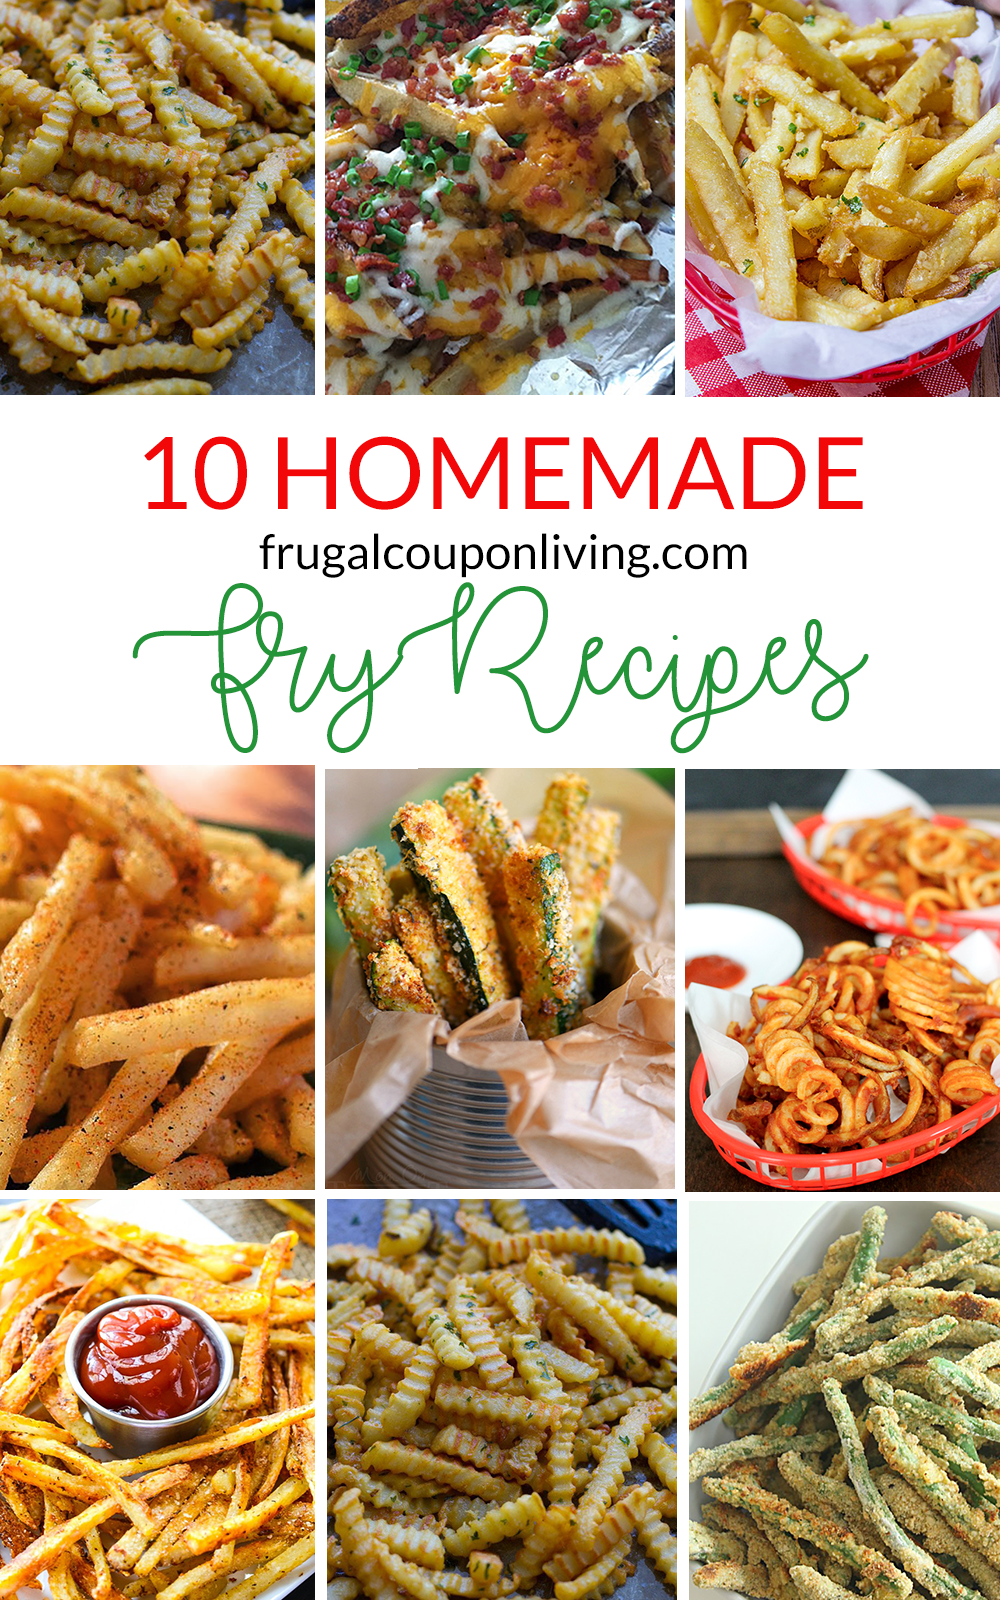 Homemade Fry Recipes